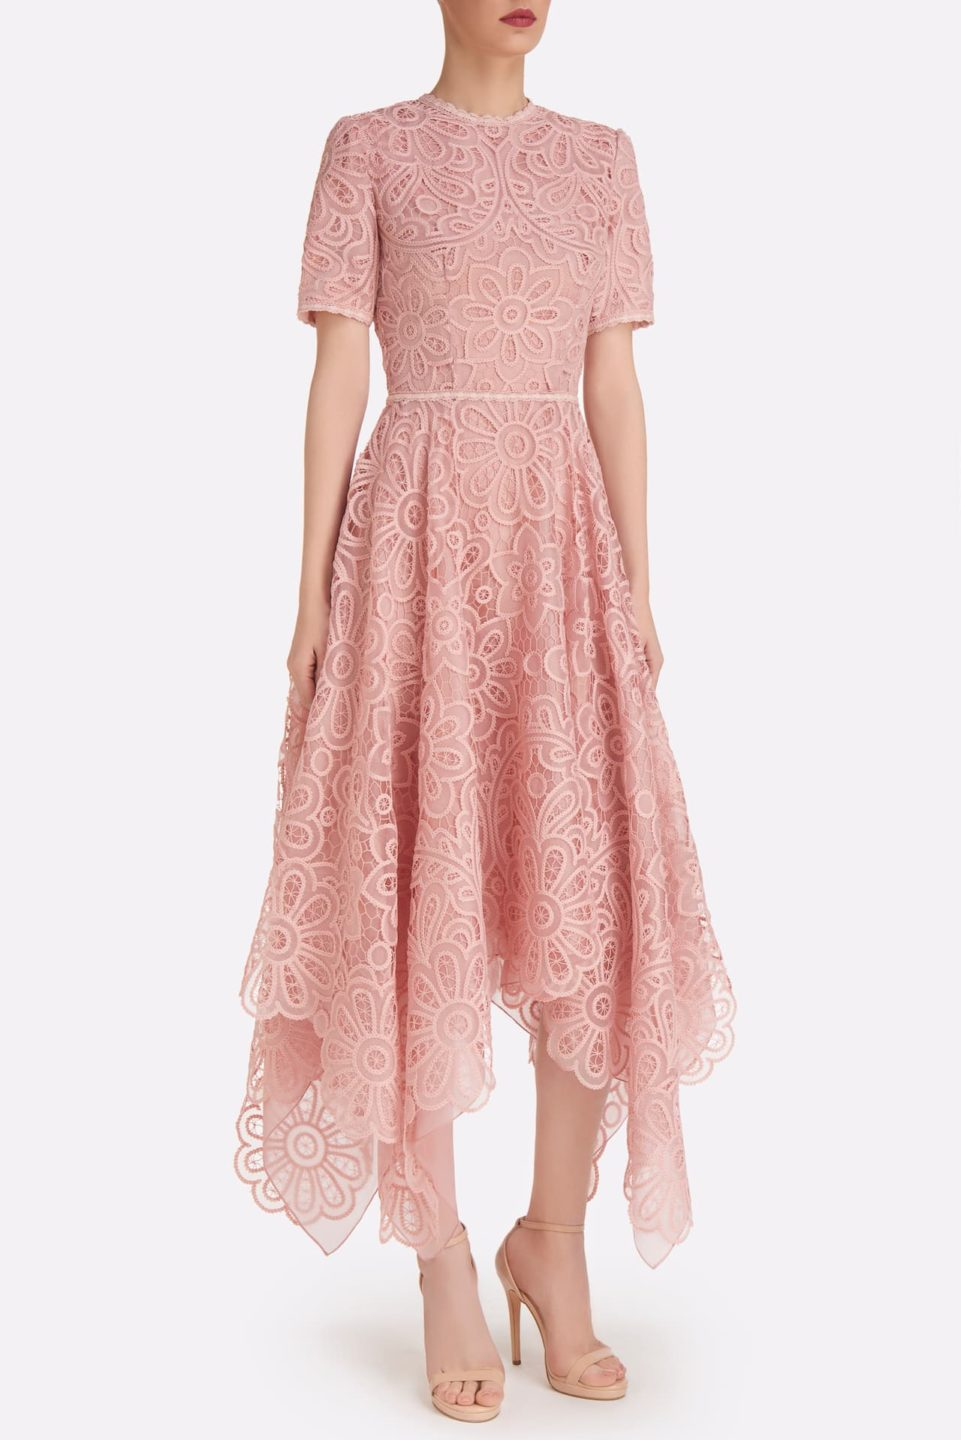 Raisie SS2115 Pink Embroidered Organza Handkerchief Dress with Short Sleeves